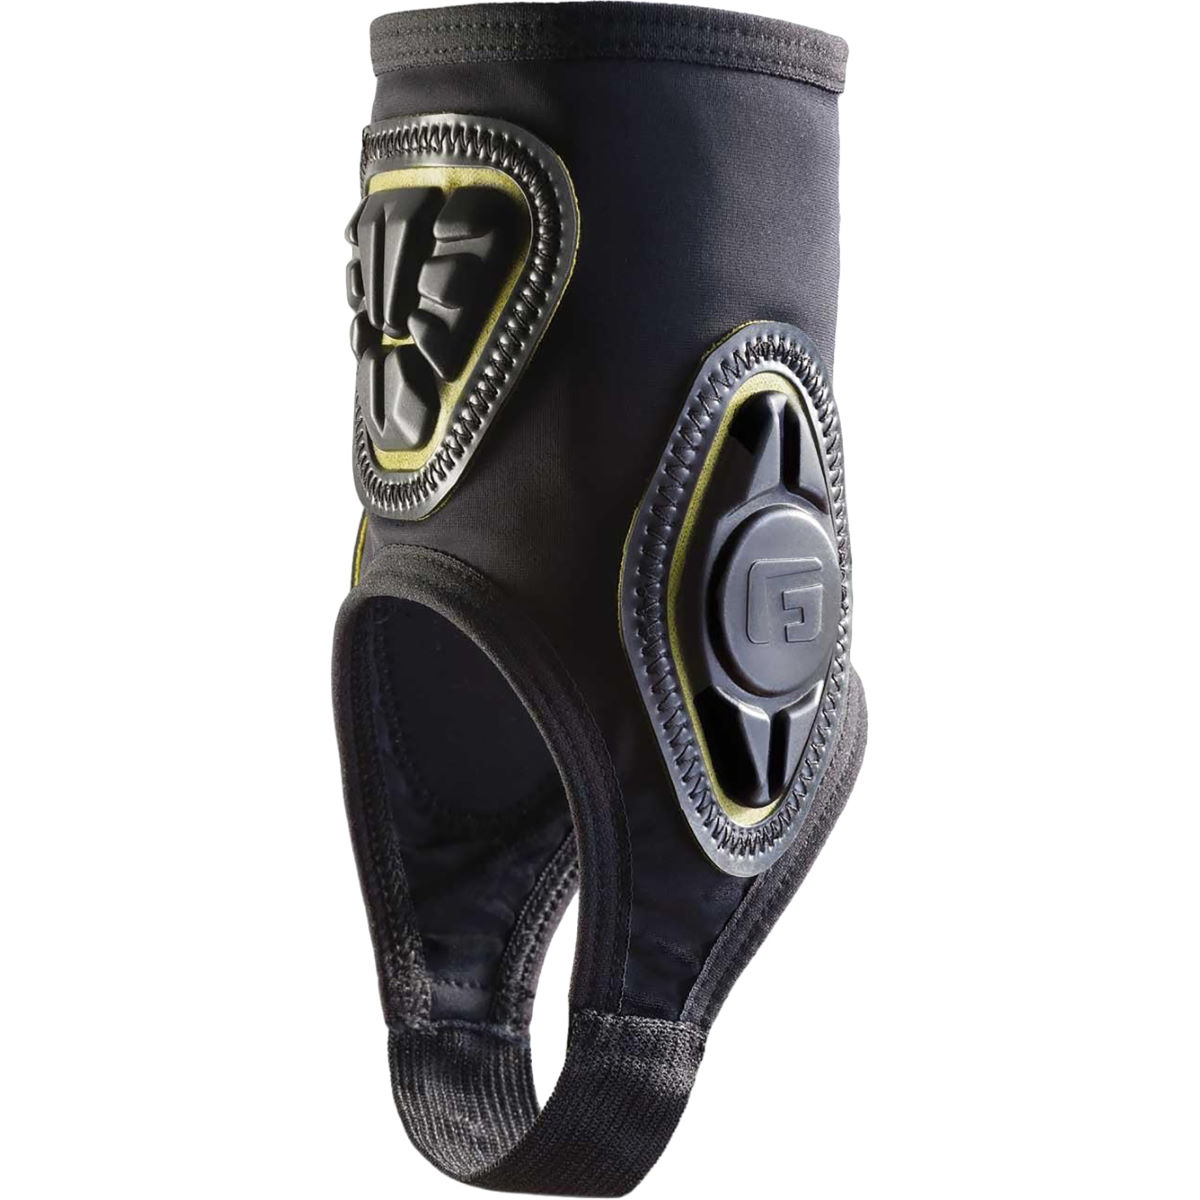 G-Form G-Form Pro-X Ankle Guard   Ankle Pads